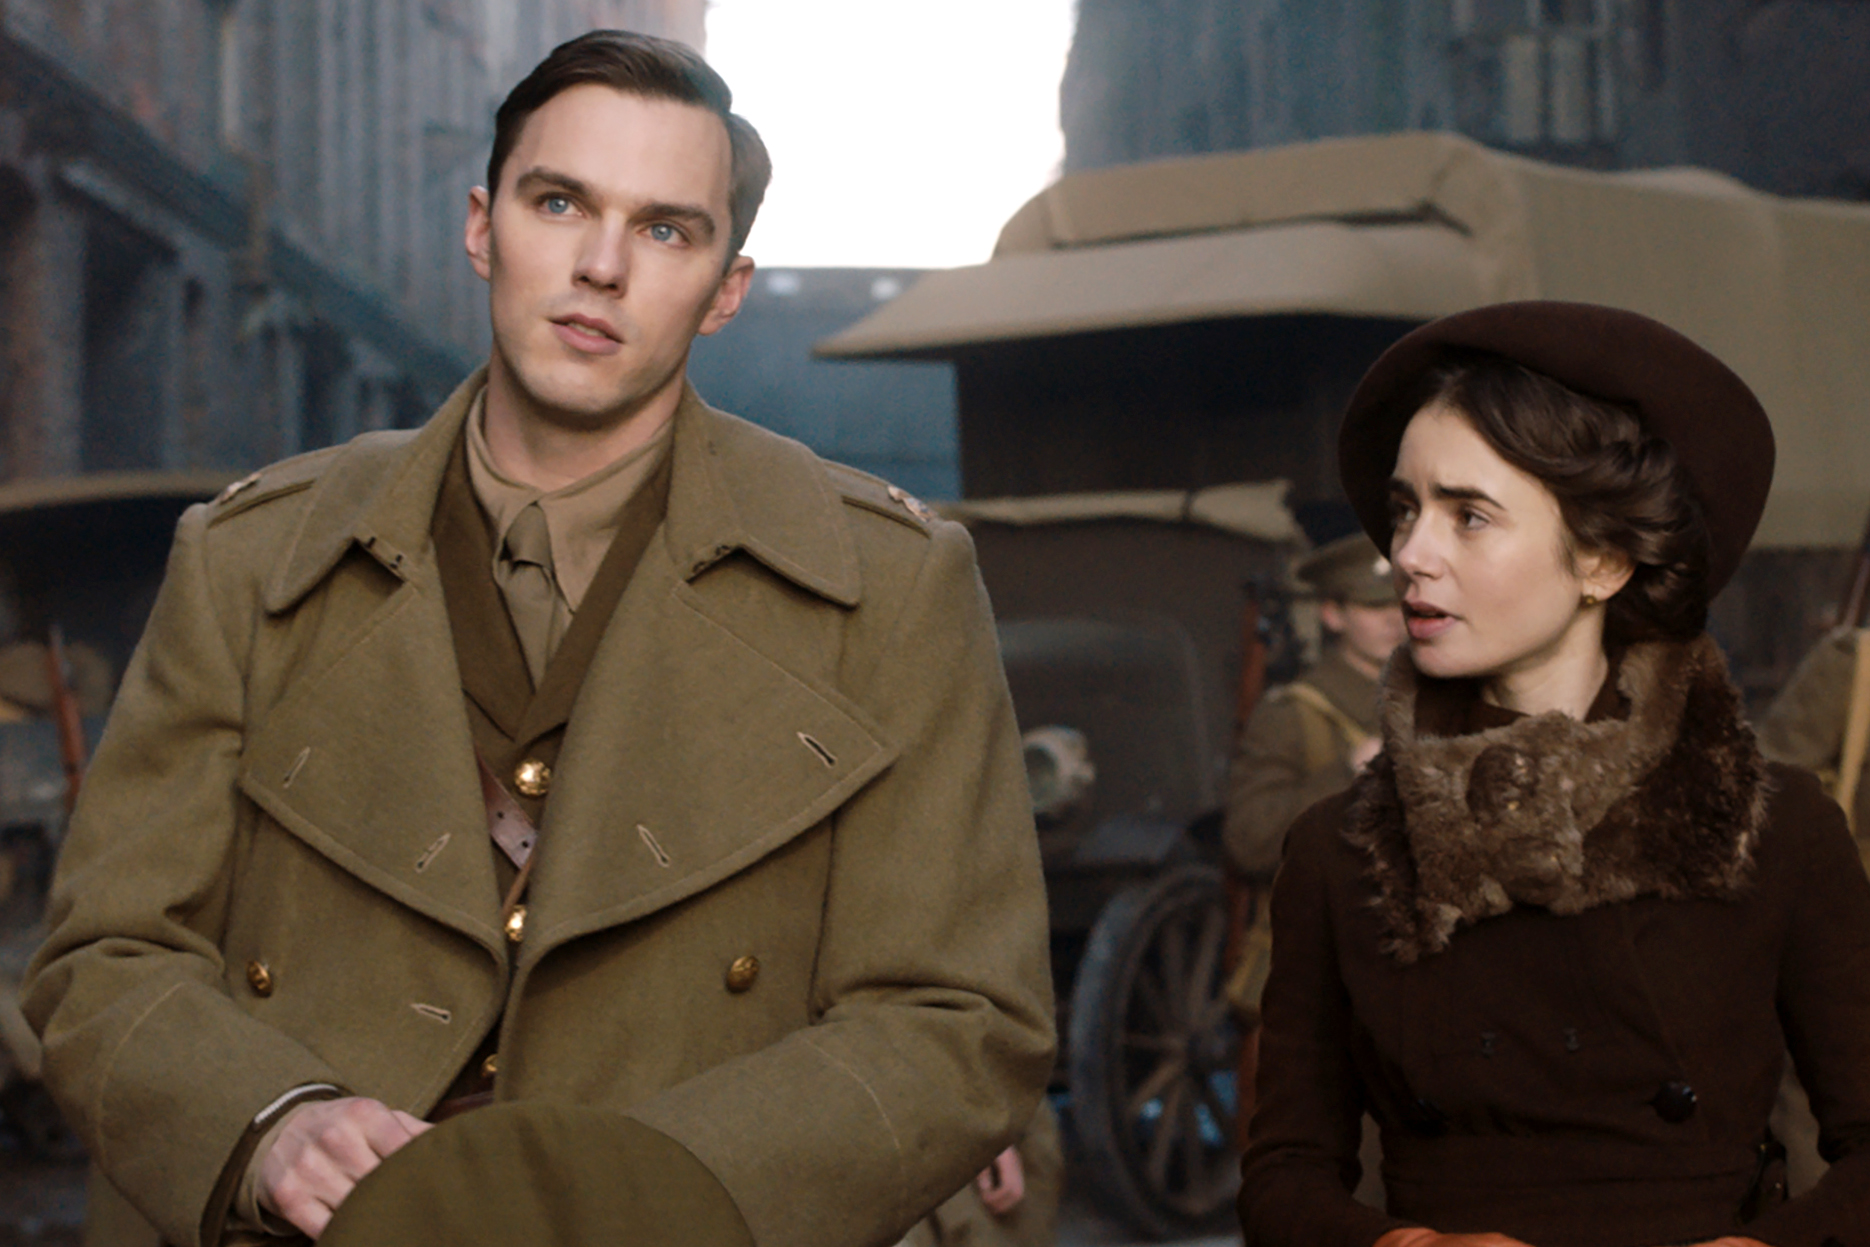 Nicholas Hoult and Lily Collins star in a scene from the movie